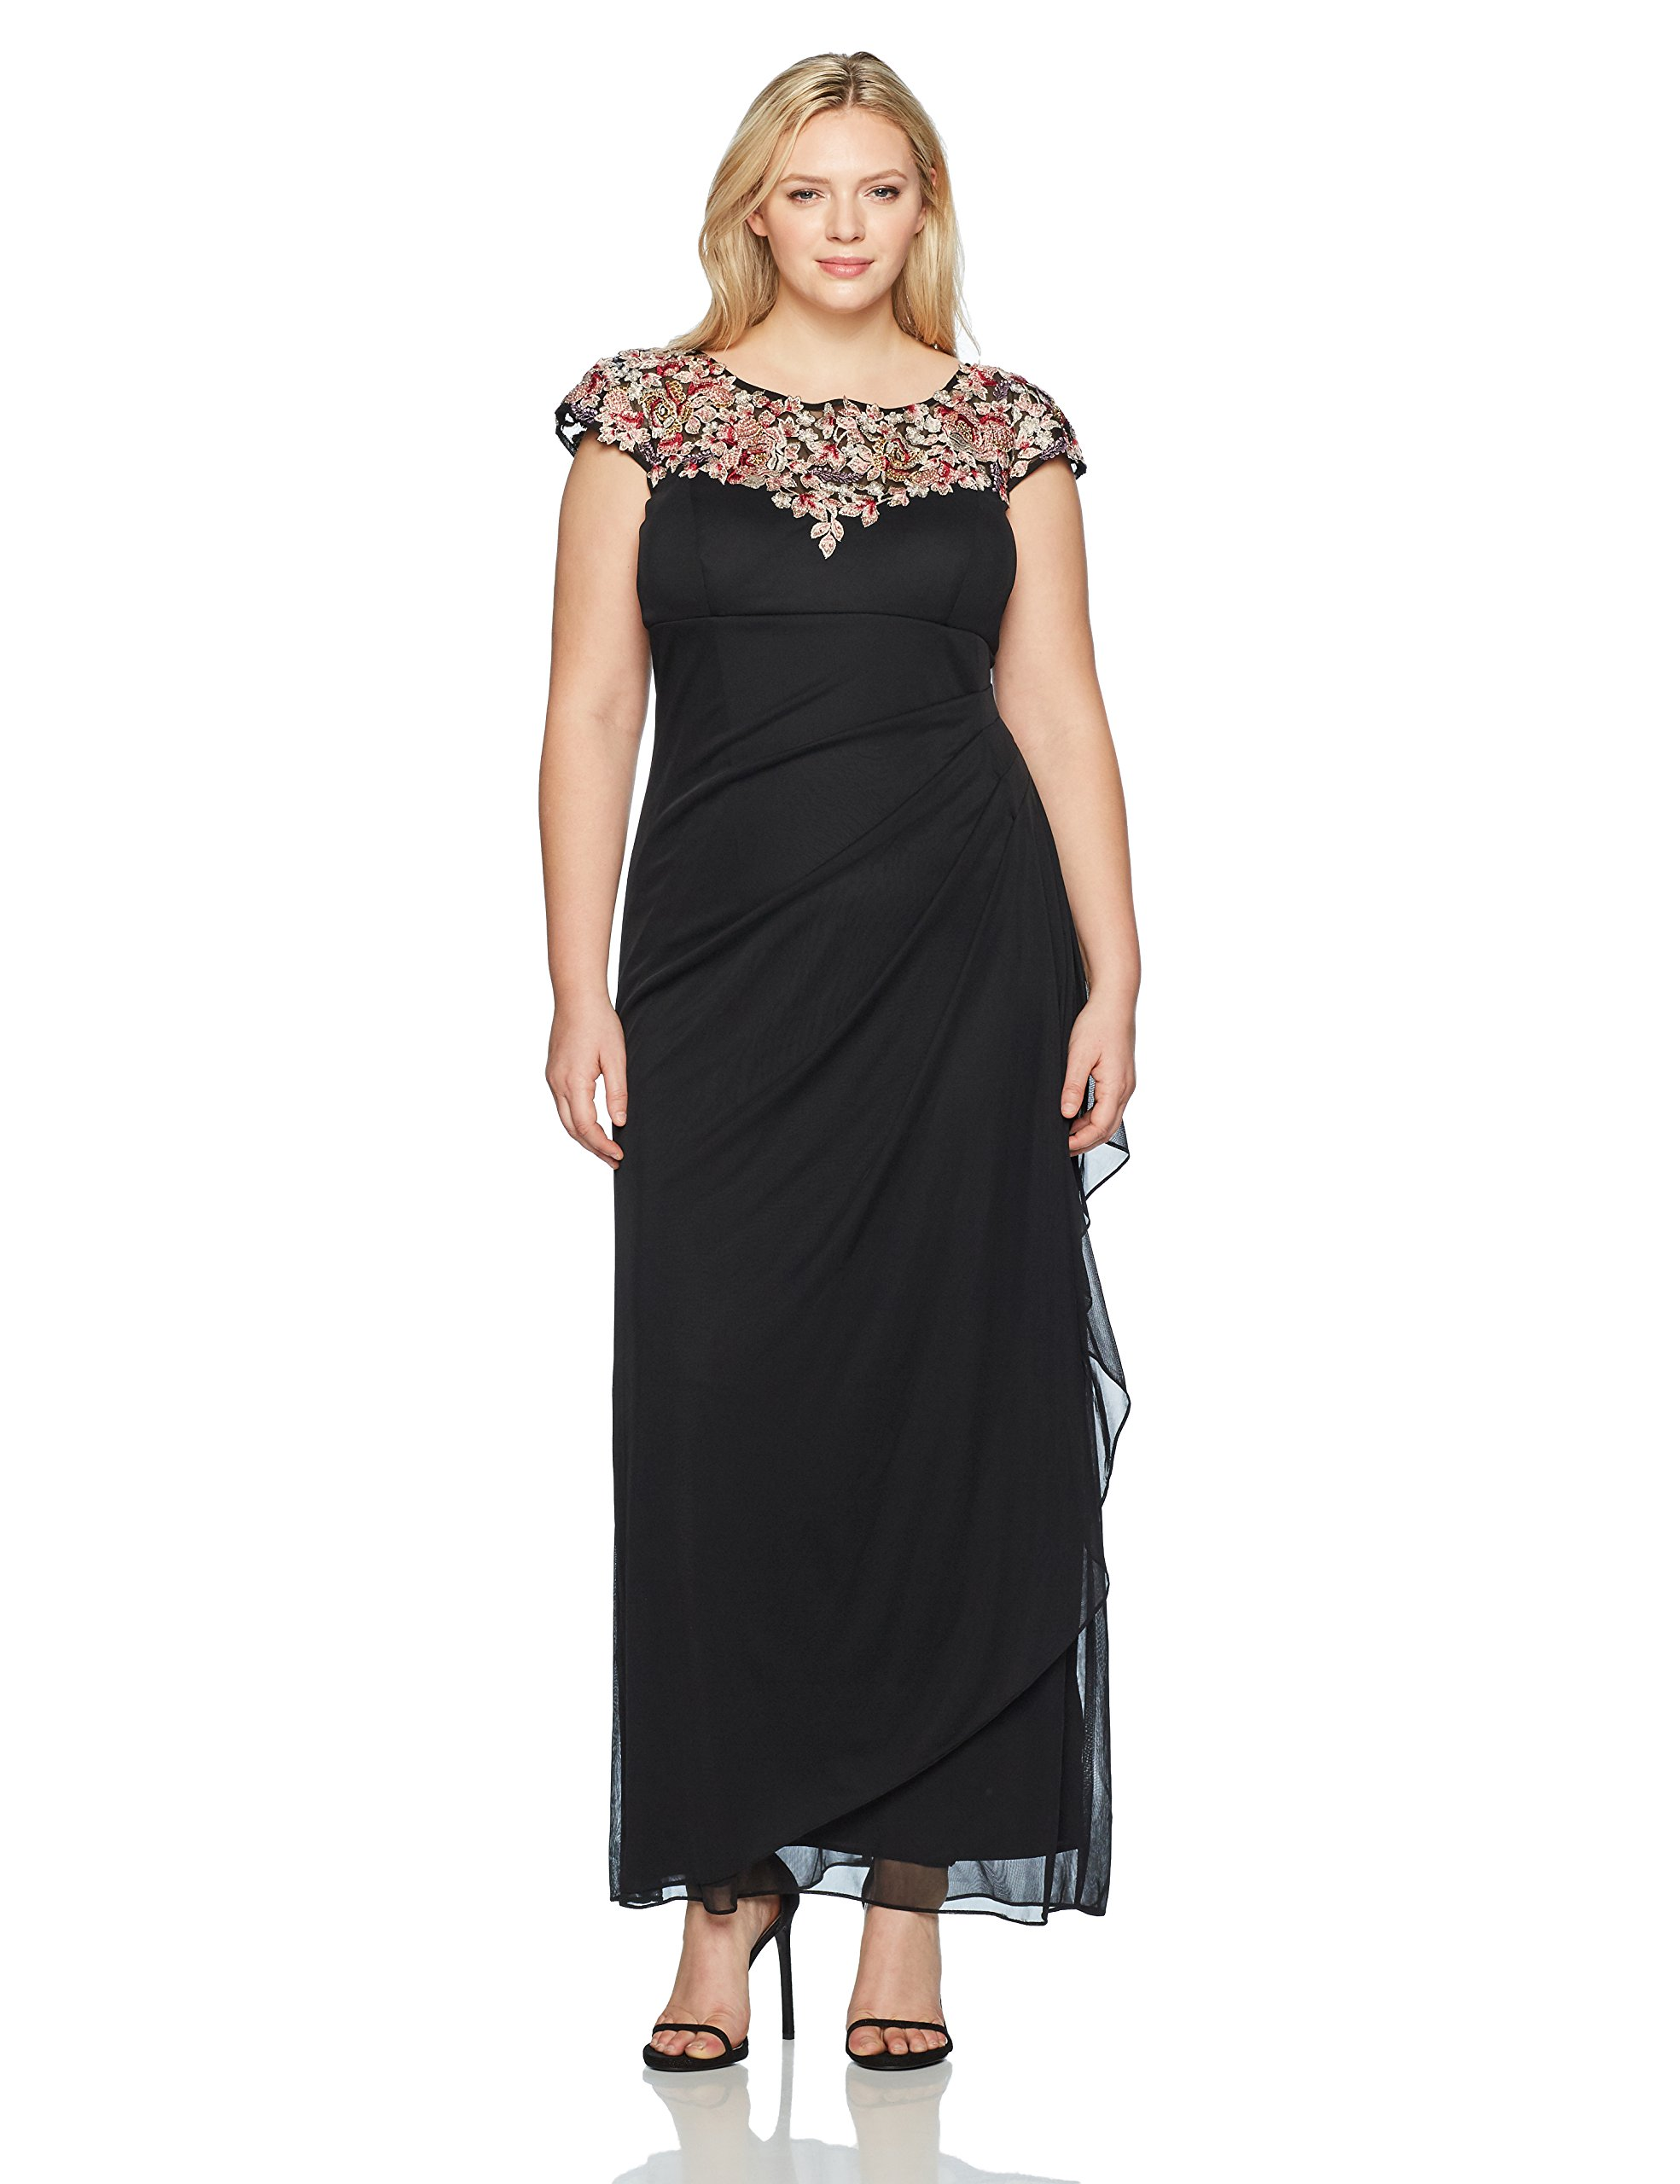 Xscape Women's Plus Size Long Top Embroidery Dress, Black/Multi, 14W by Xscape (Image #1)